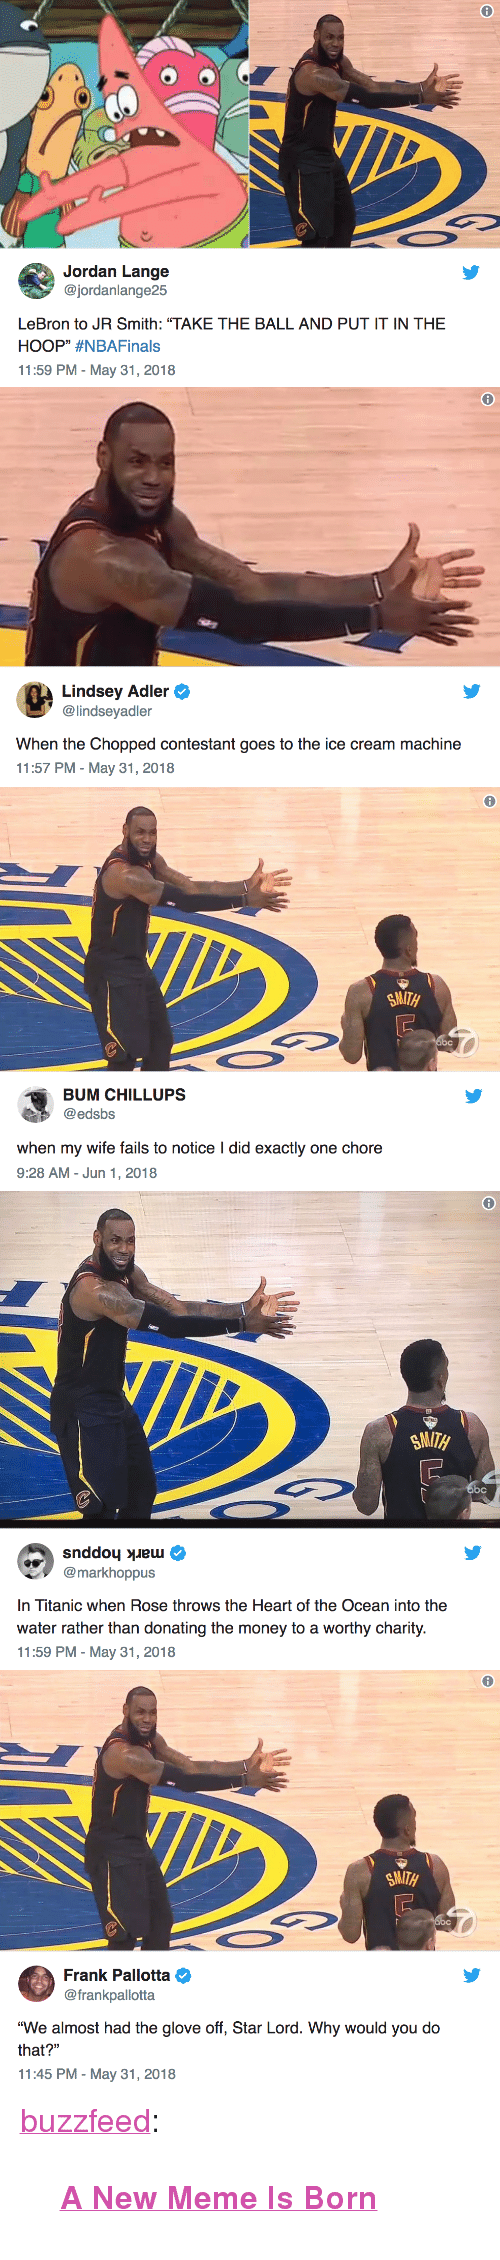 """J.R. Smith, Meme, and Money: @jordanlange25  LeBron to JR Smith: """"TAKE THE BALL AND PUT IT IN THE  HOOP"""" #NBAFinals  11:59 PM-May 31, 2018   Lindsey Adler  @lindseyadler  When the Chopped contestant goes to the ice cream machine  11:57 PM - May 31, 2018   8  SMITH  BUM CHILLUPS  @edsbs  when my wife fails to notice I did exactly one chore  9:28 AM- Jun 1, 2018   SMITH  bc  @markhoppus  In Titanic when Rose throws the Heart of the Ocean into the  water rather than donating the money to a worthy charity  11:59 PM - May 31, 2018   6  Frank Pallotta  @frankpallotta  """"We almost had the glove off, Star Lord. Why would you do  that?""""  11:45 PM-May 31, 2018 <p><a href=""""https://buzzfeed.tumblr.com/post/174470842055/a-new-meme-is-born"""" class=""""tumblr_blog"""">buzzfeed</a>:</p>  <blockquote><p><a href=""""https://bzfd.it/2kF4mxi""""><b>A New Meme Is Born</b></a><br/></p></blockquote>"""